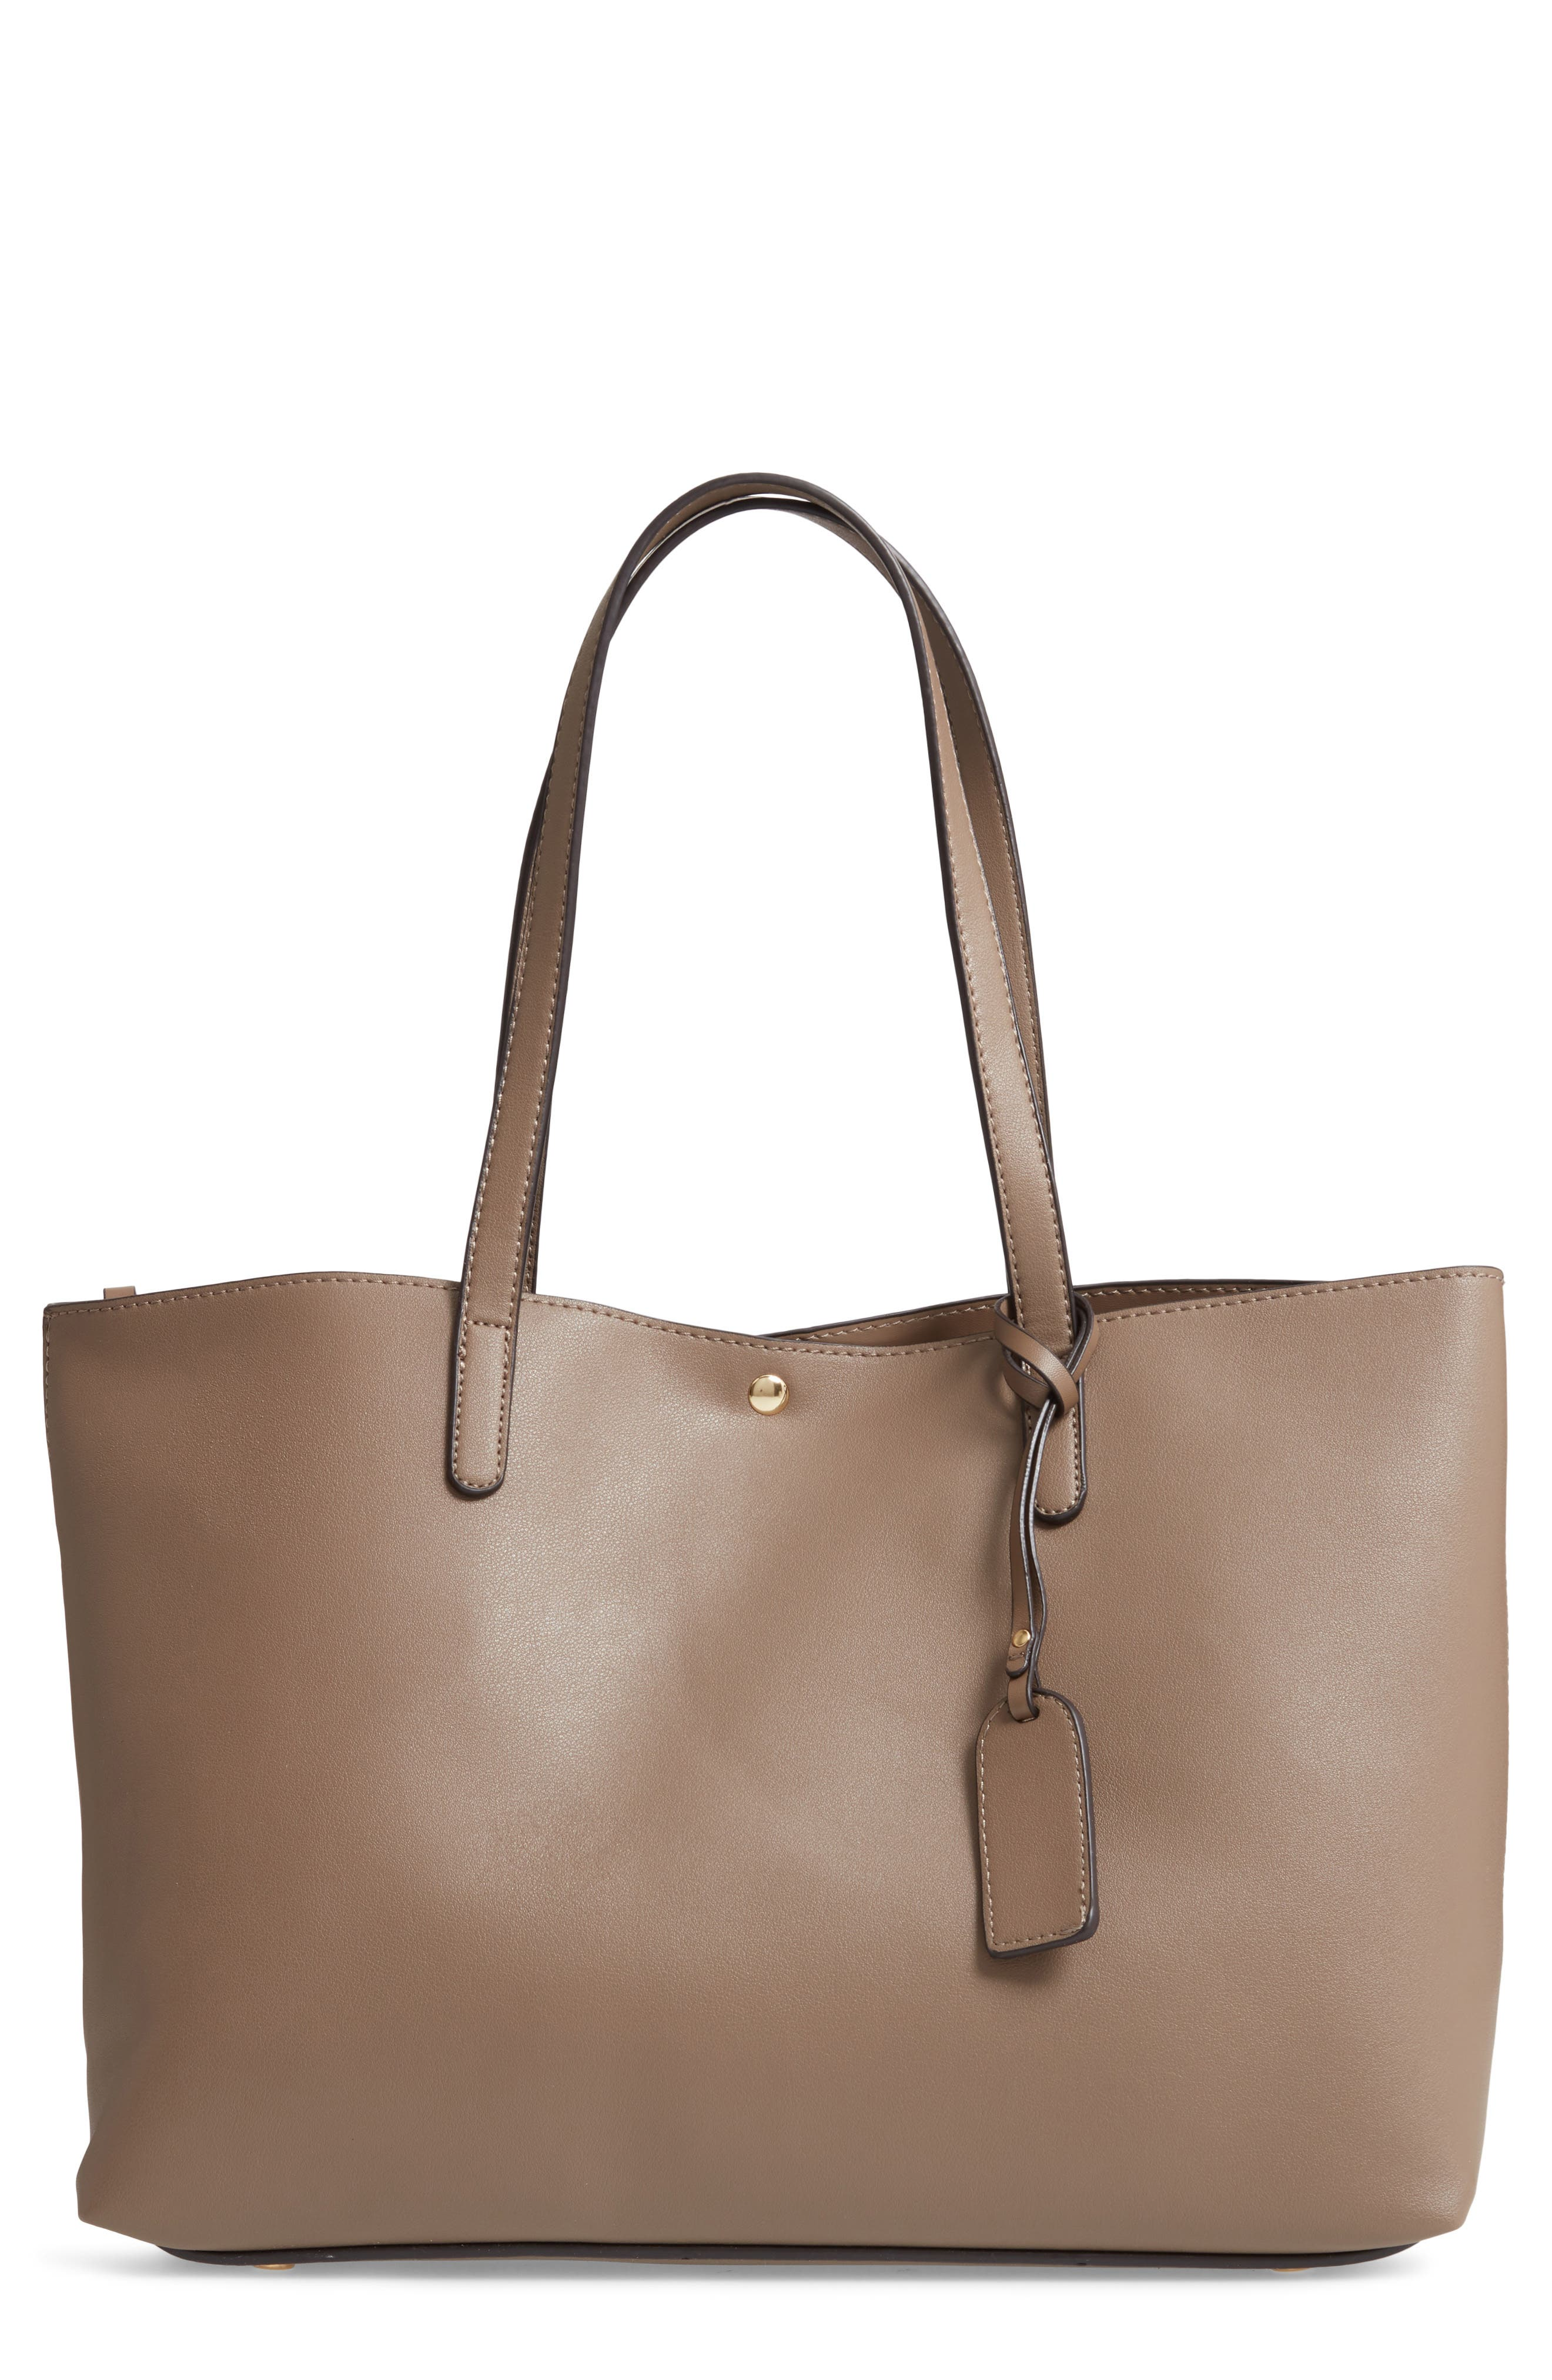 SOLE SOCIETY, Zeda Faux Leather Tote, Main thumbnail 1, color, TAUPE